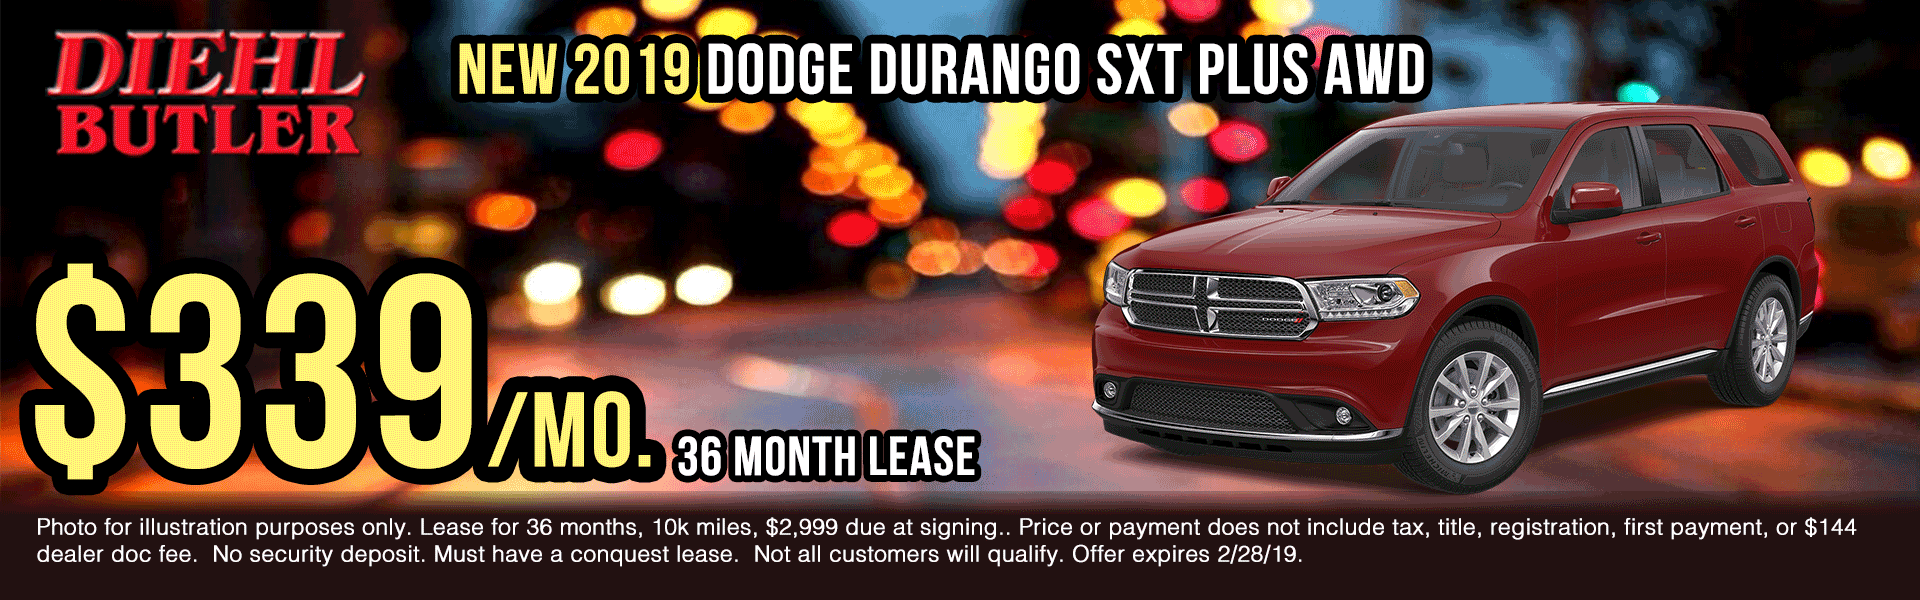 D190106-2019-dodge-durango-sxt-plus New vehicle specials Diehl Automotive Diehl Butler Diehl of Butler specials truck specials ram specials jeep specials Chrysler specials dodge specials lease specials ram truck month presidents day sales event